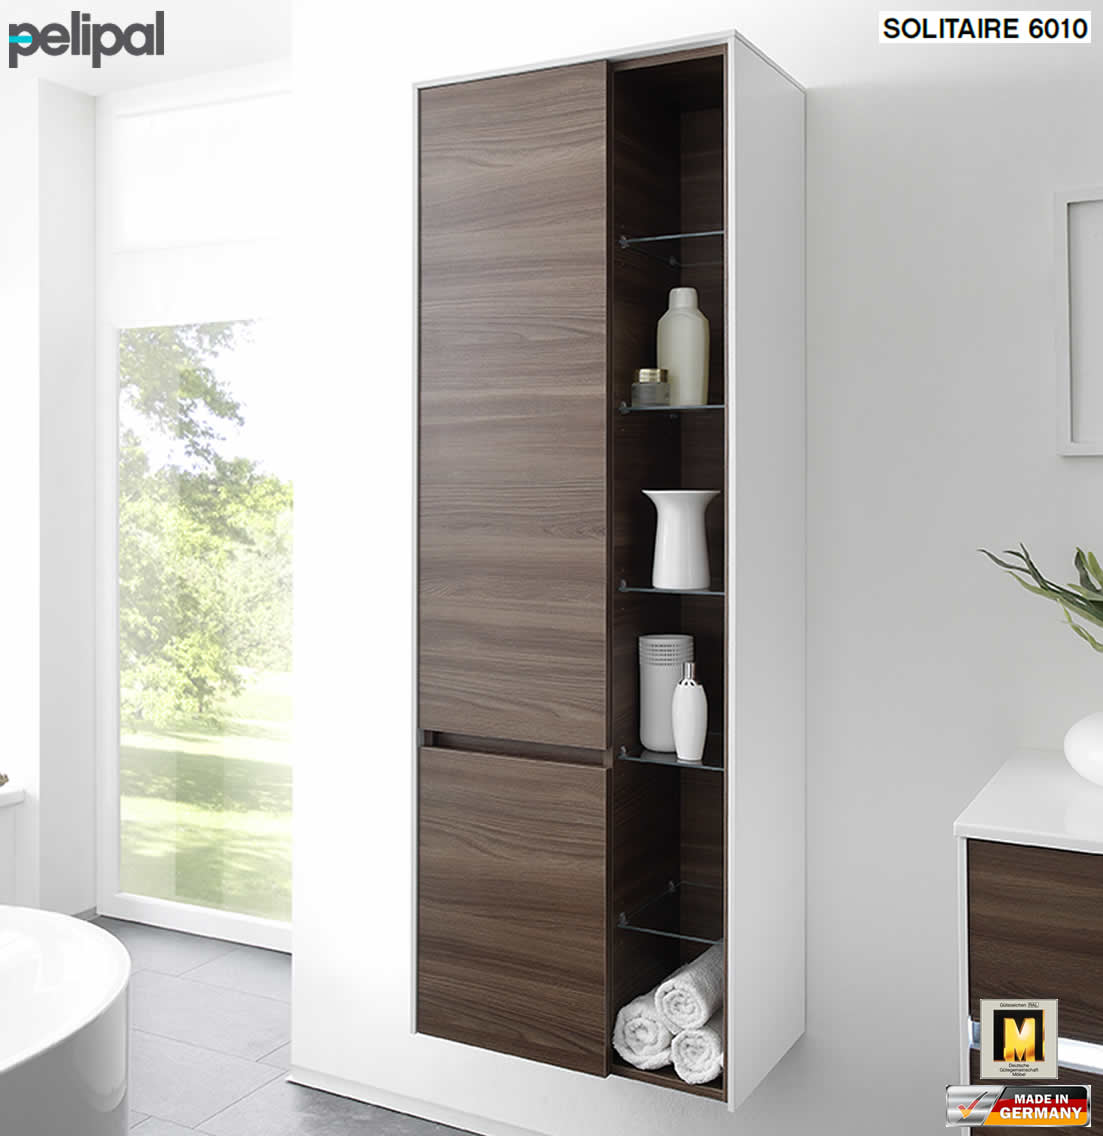 pelipal solitaire 6010 hochschrank mit regal und 2 t ren 6010 hsr 01 impuls home. Black Bedroom Furniture Sets. Home Design Ideas